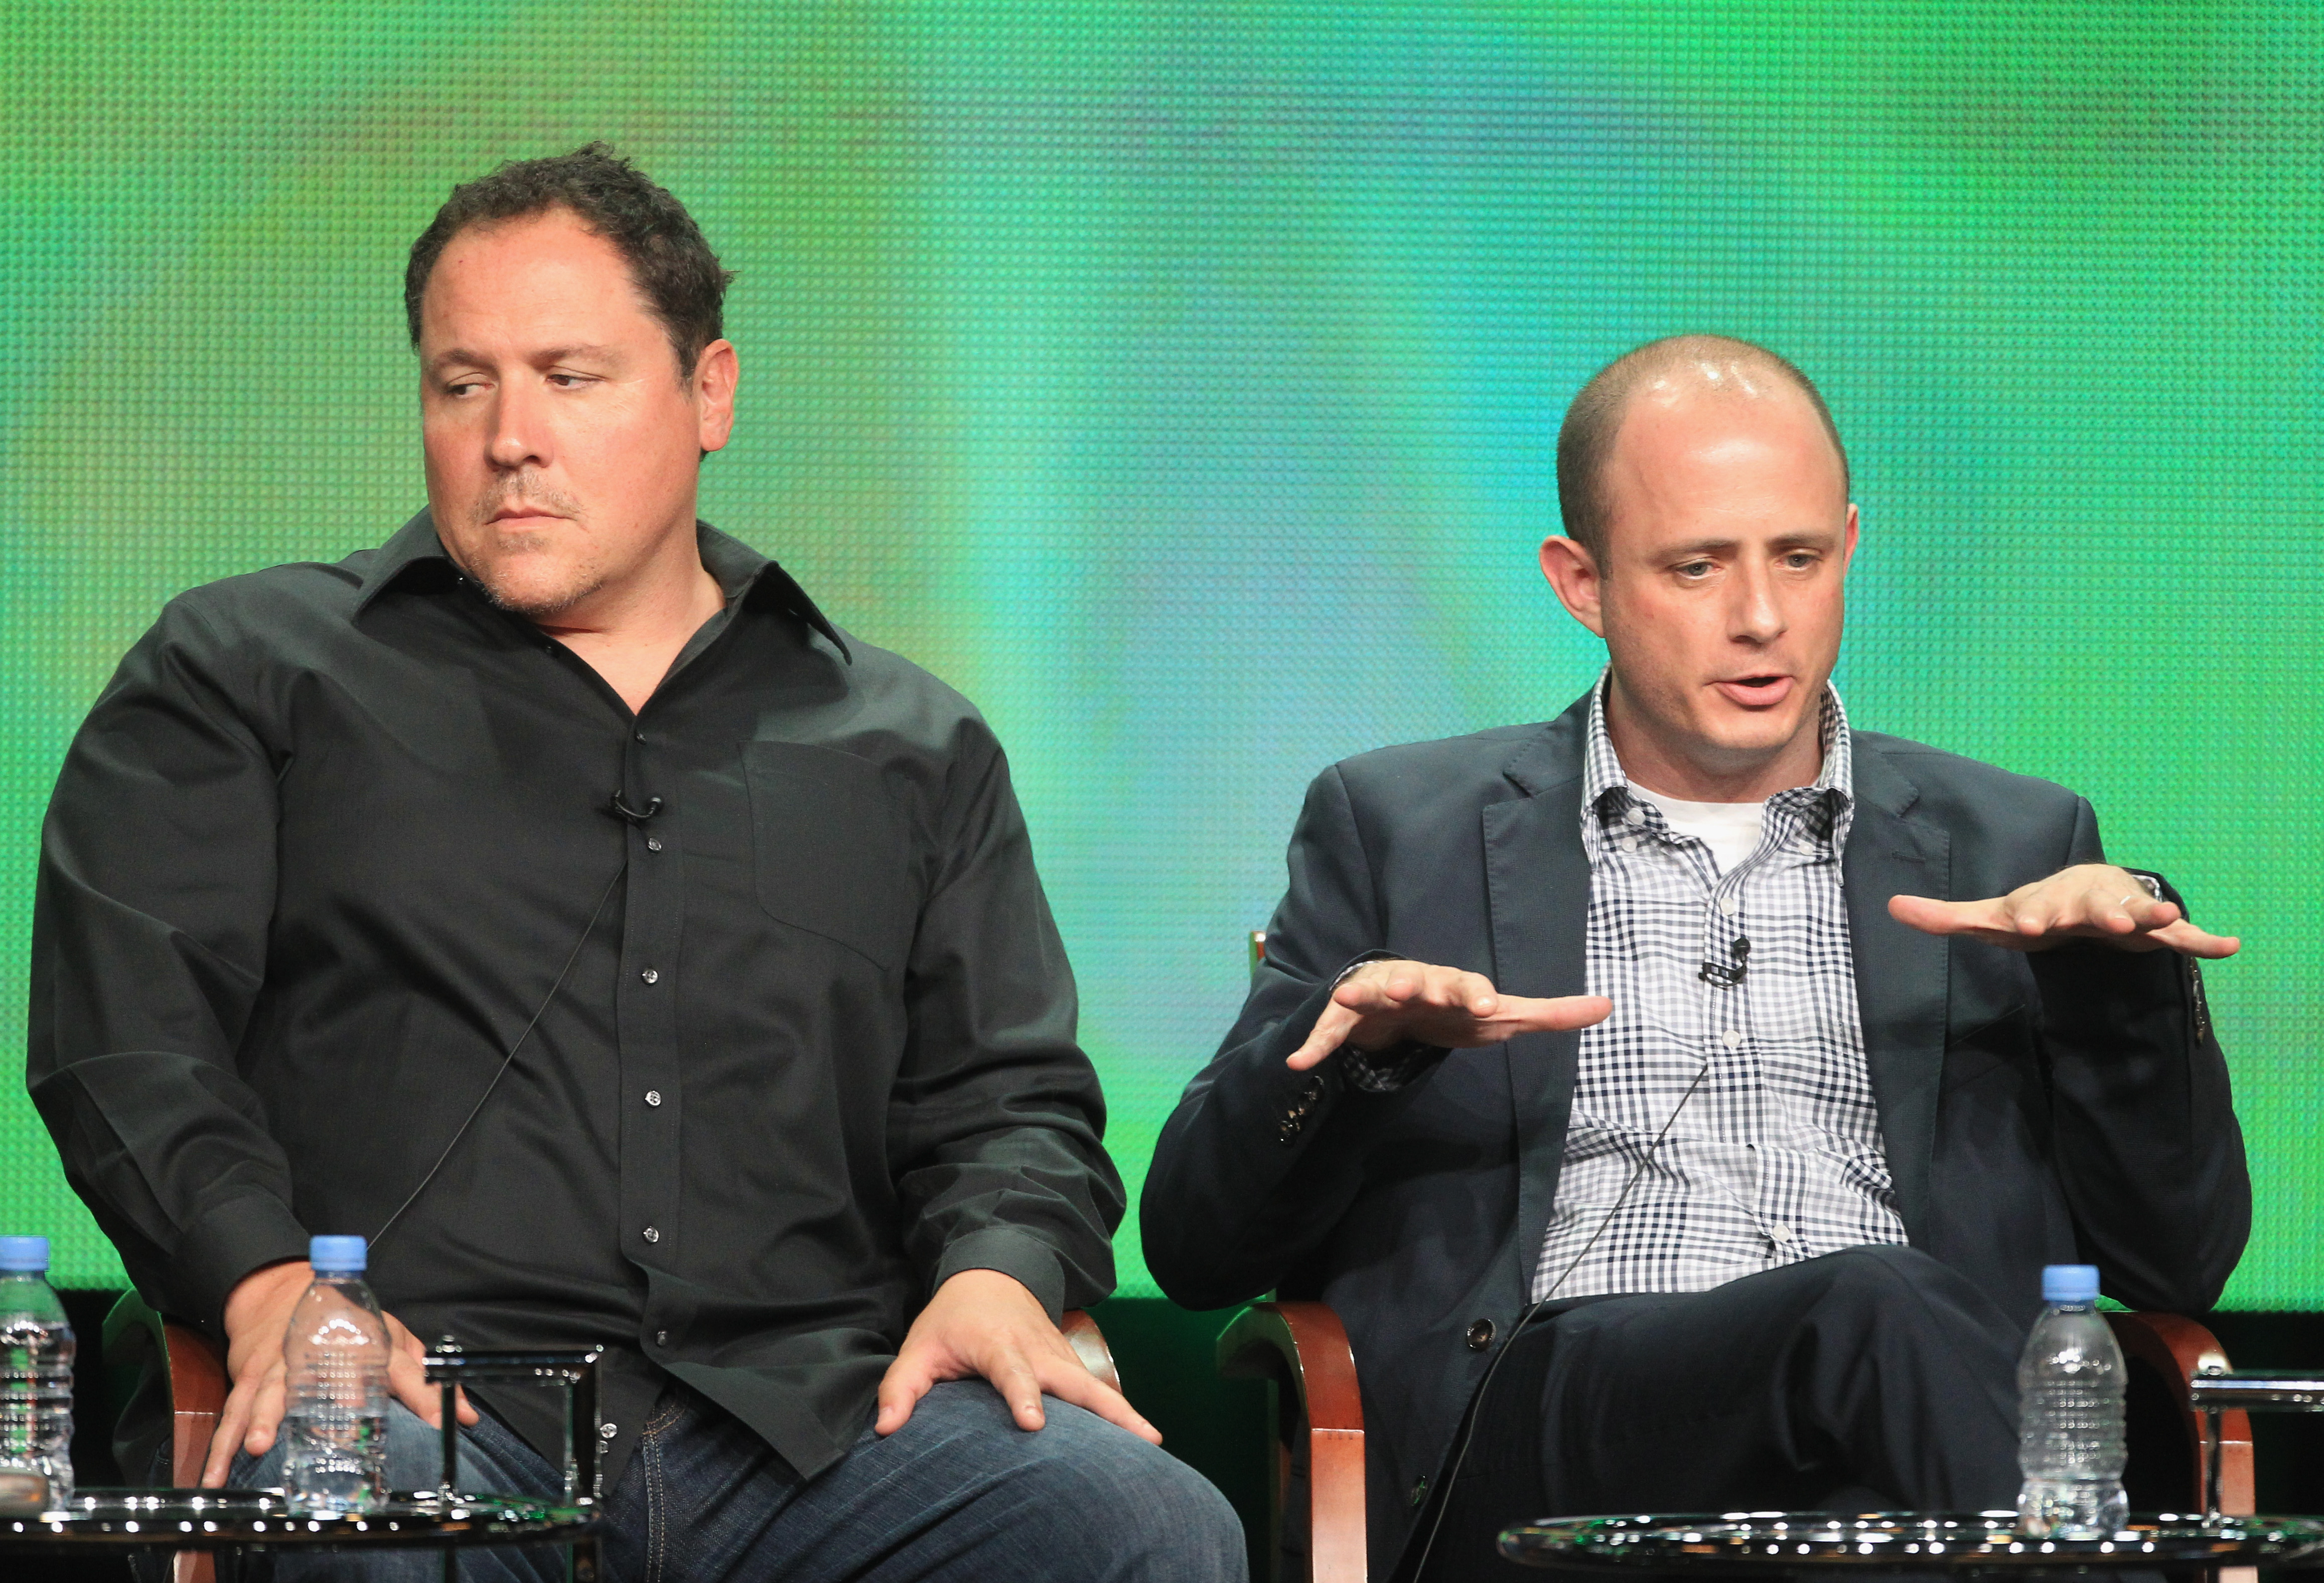 Revolution's executive producers Jon Favreau and Eric Kripke answered questions about the show at the TCA panel.